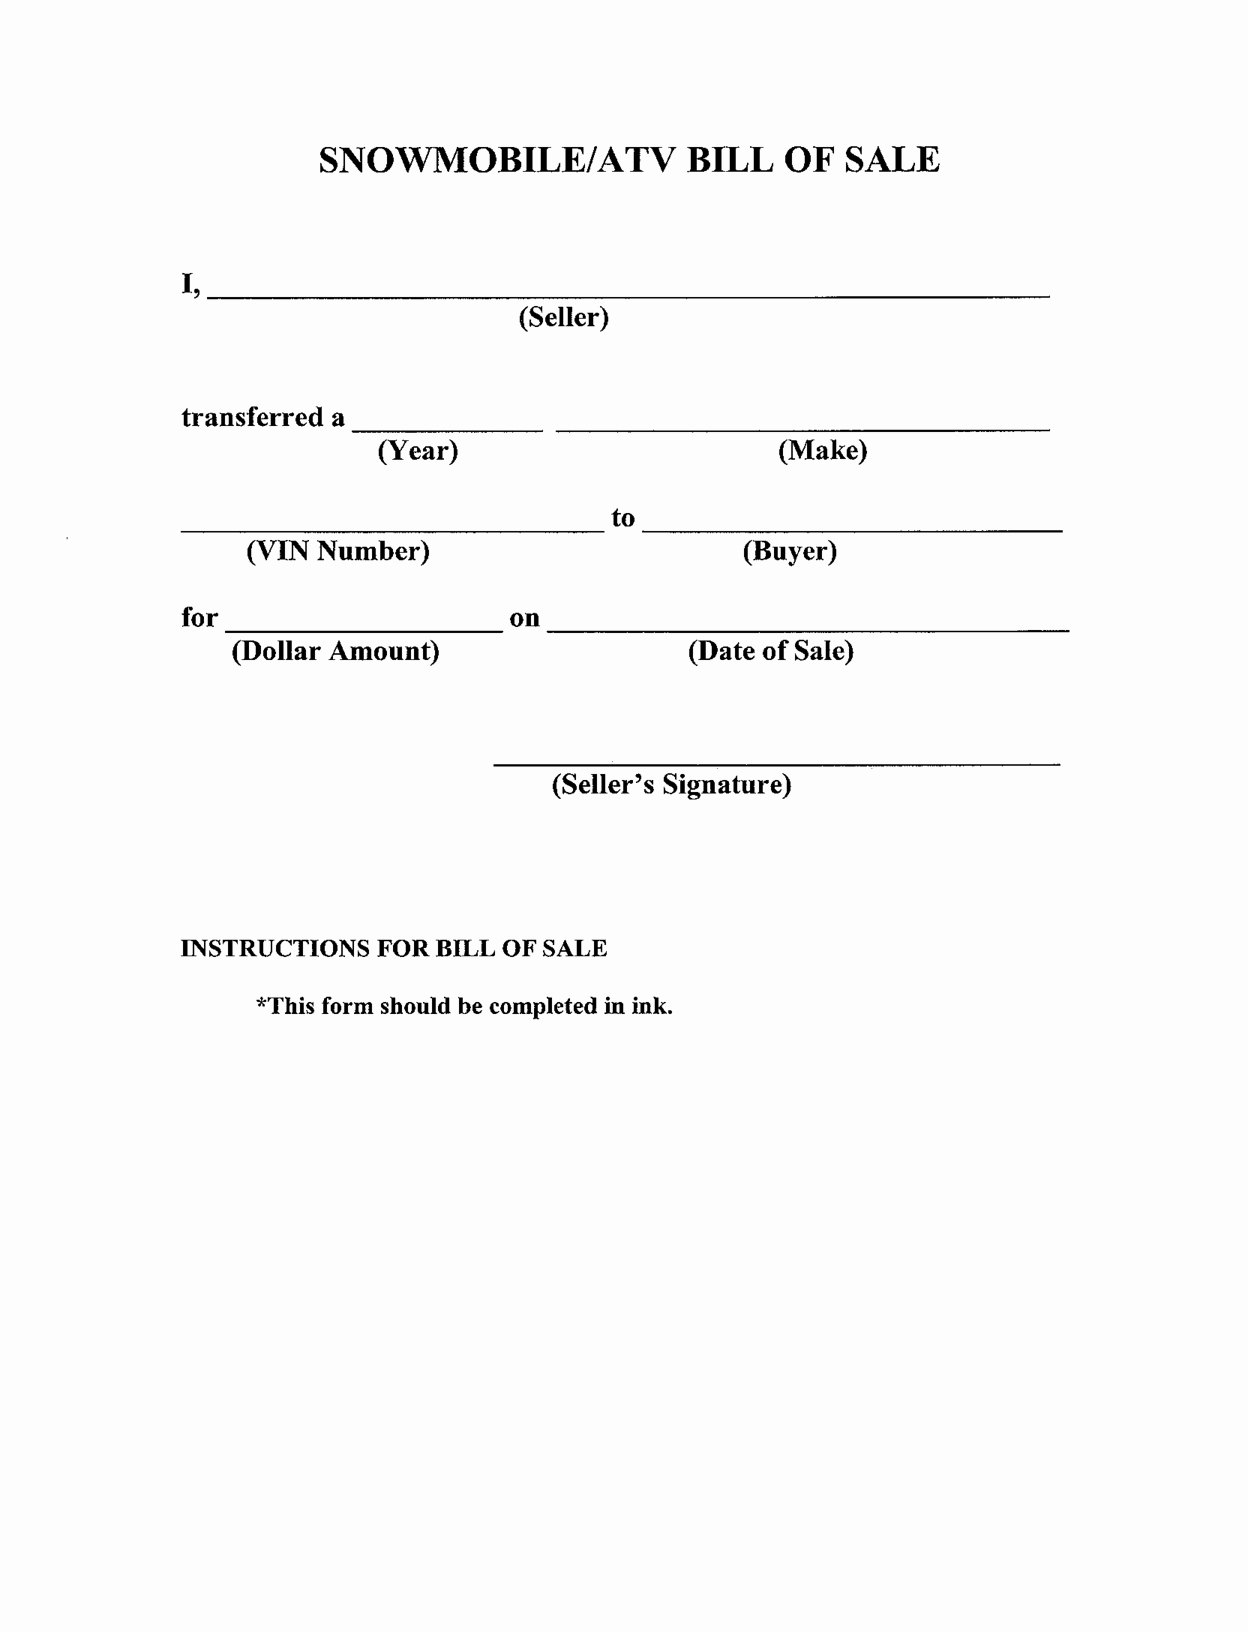 Simple Bill Of Sale Template Best Of Free Printable Bill Of Sale Templates form Generic